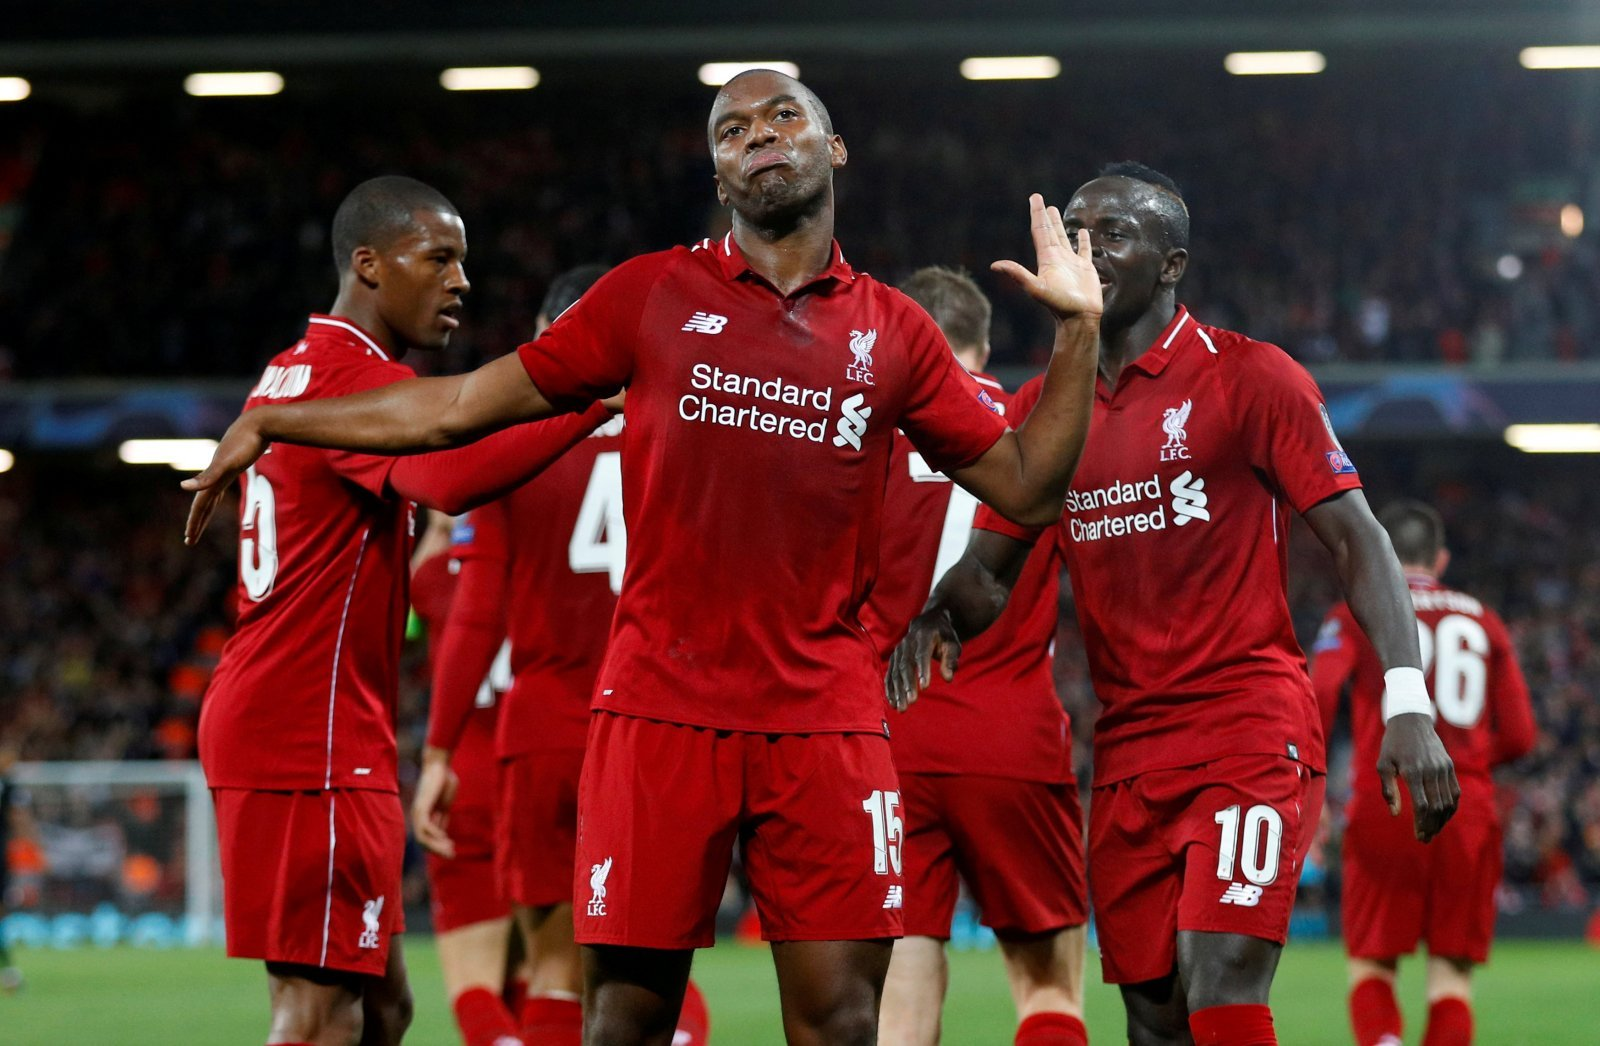 Liverpool fans over the moon as Sturridge wins LFC Player of the Month